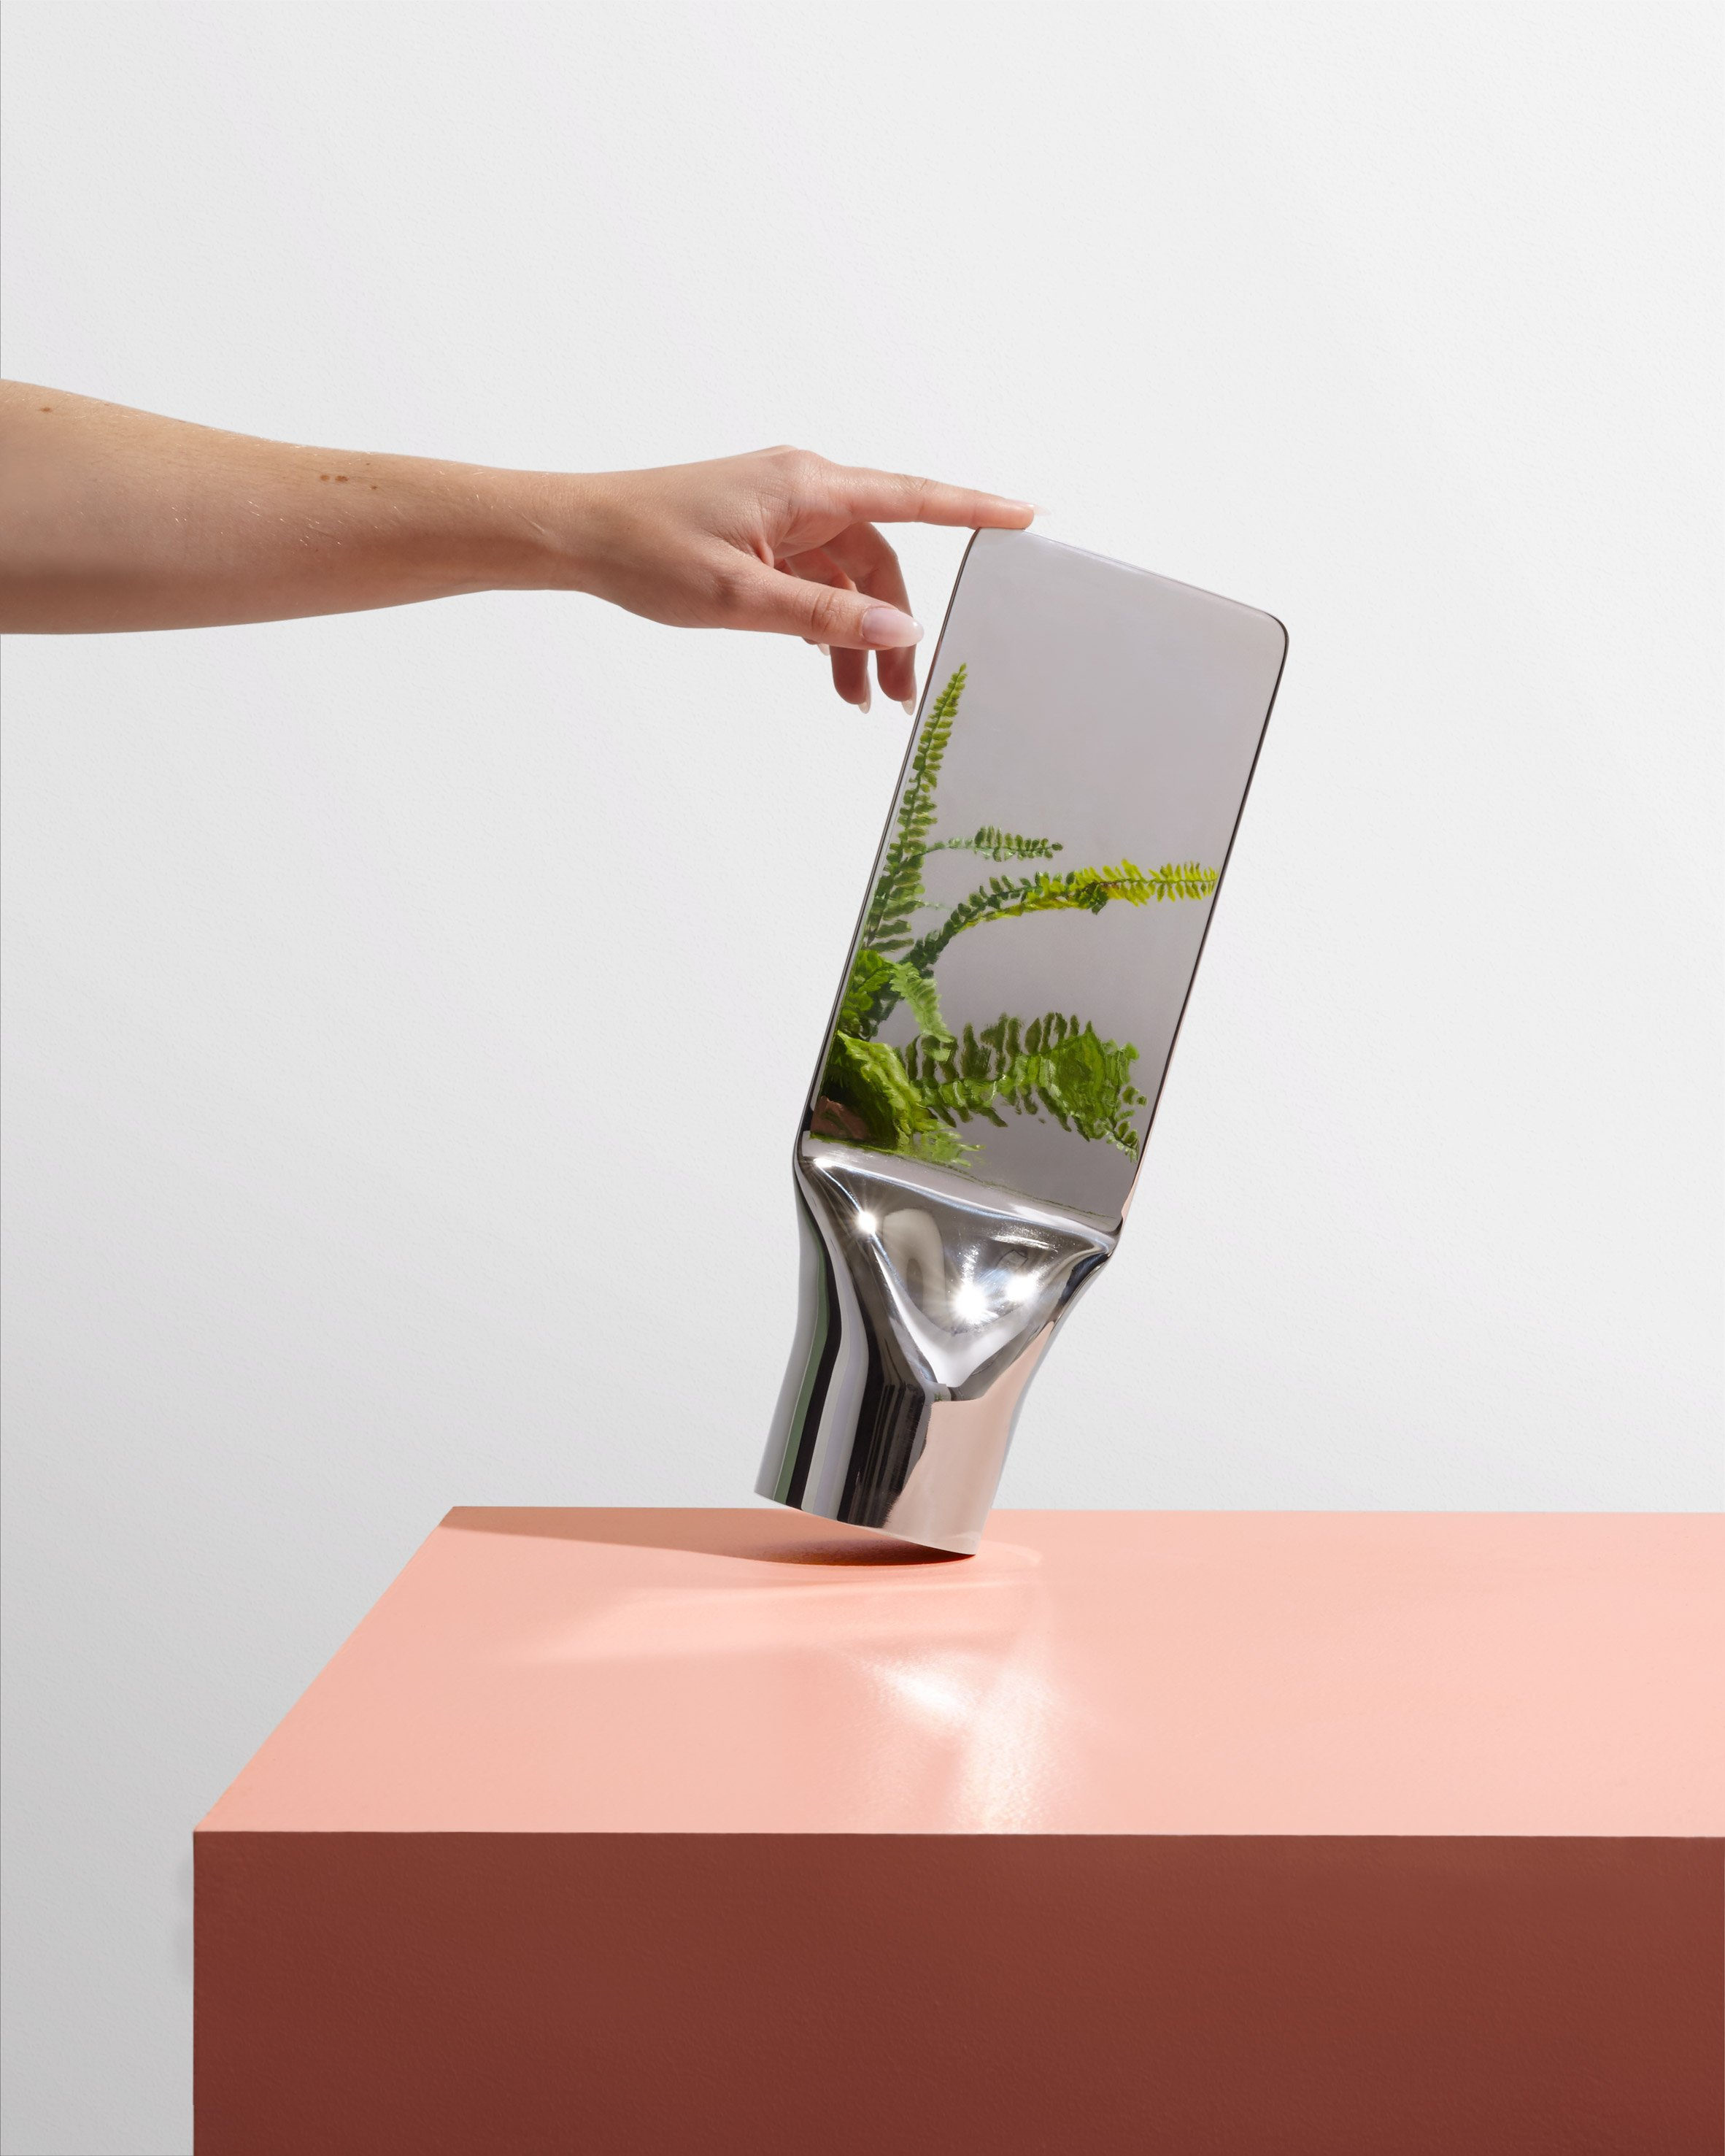 Philippe Malouin's Press mirror is made from a single metal tube